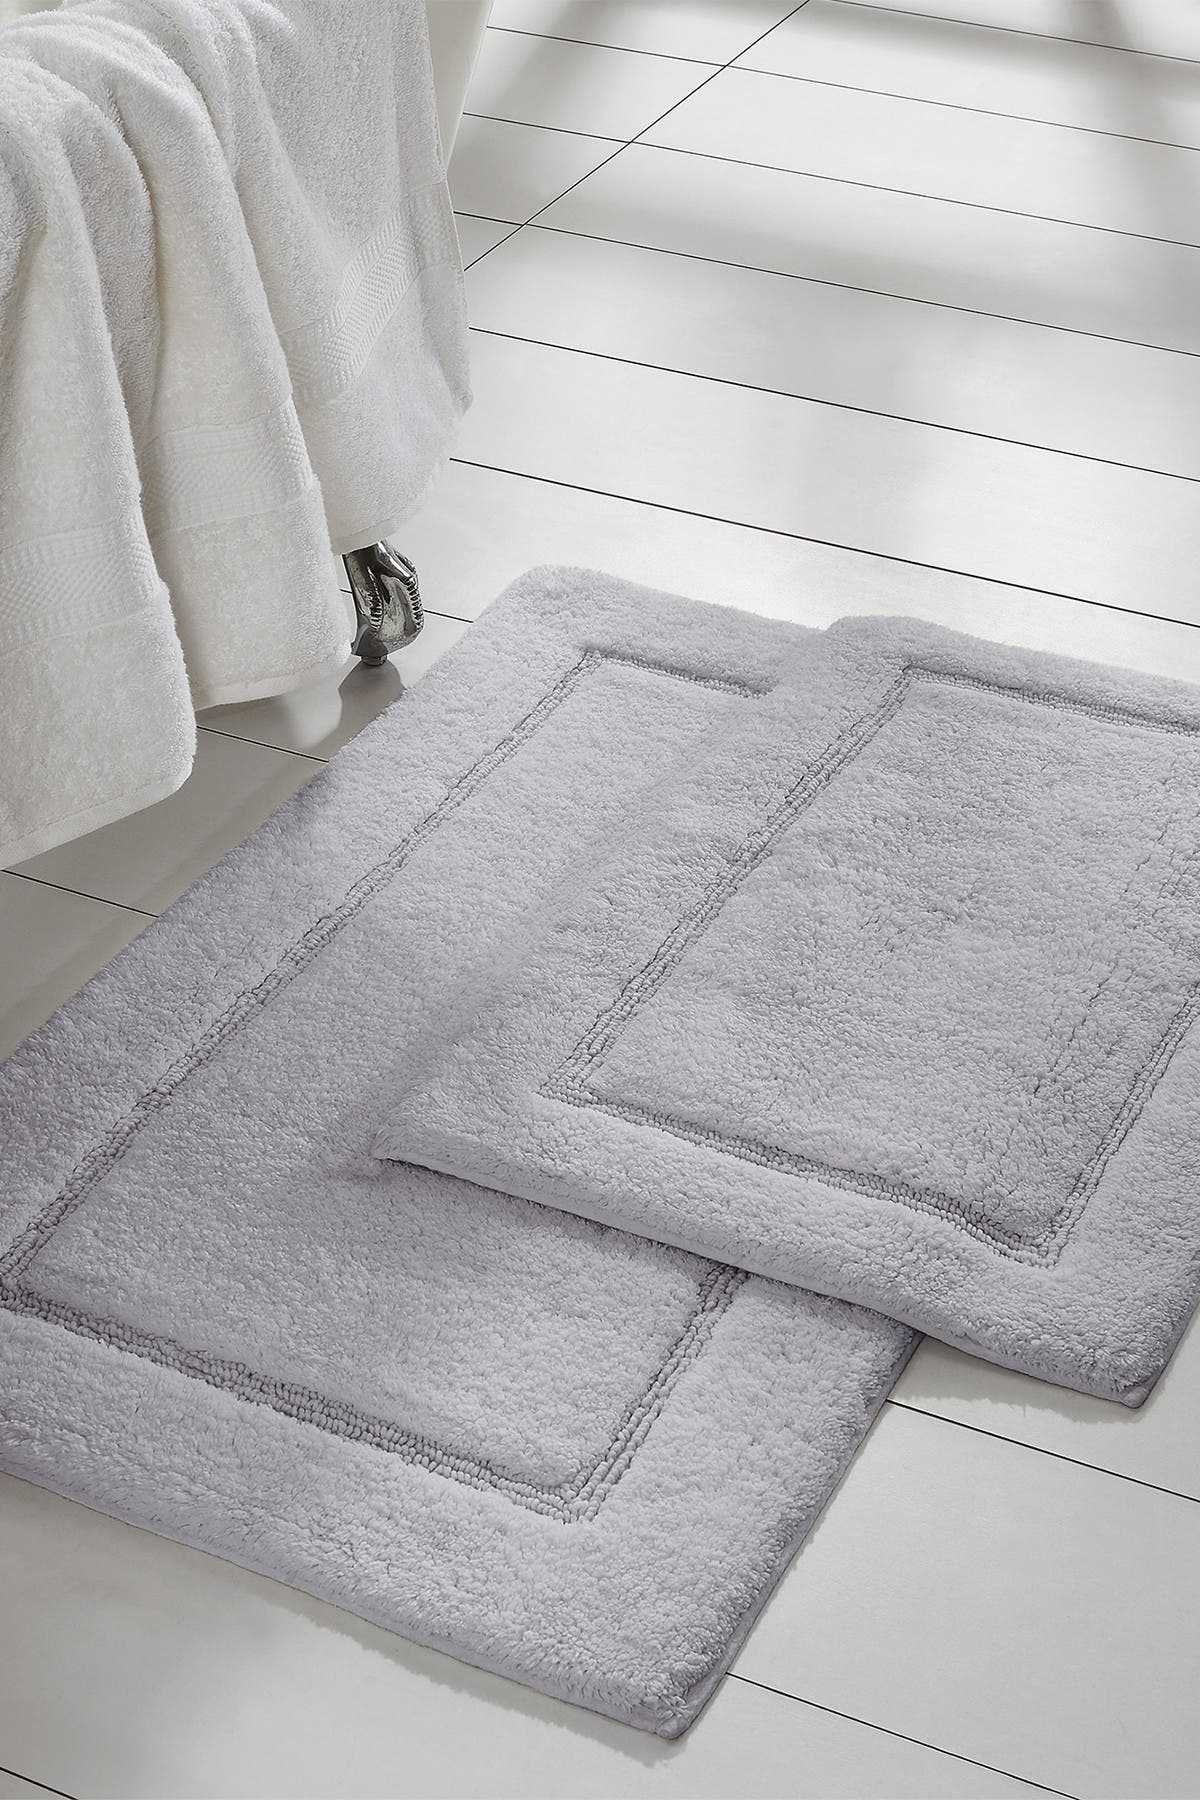 Image of Modern Threads Silver Solid Loop Non-Slip Bath Mat 2-Piece Set